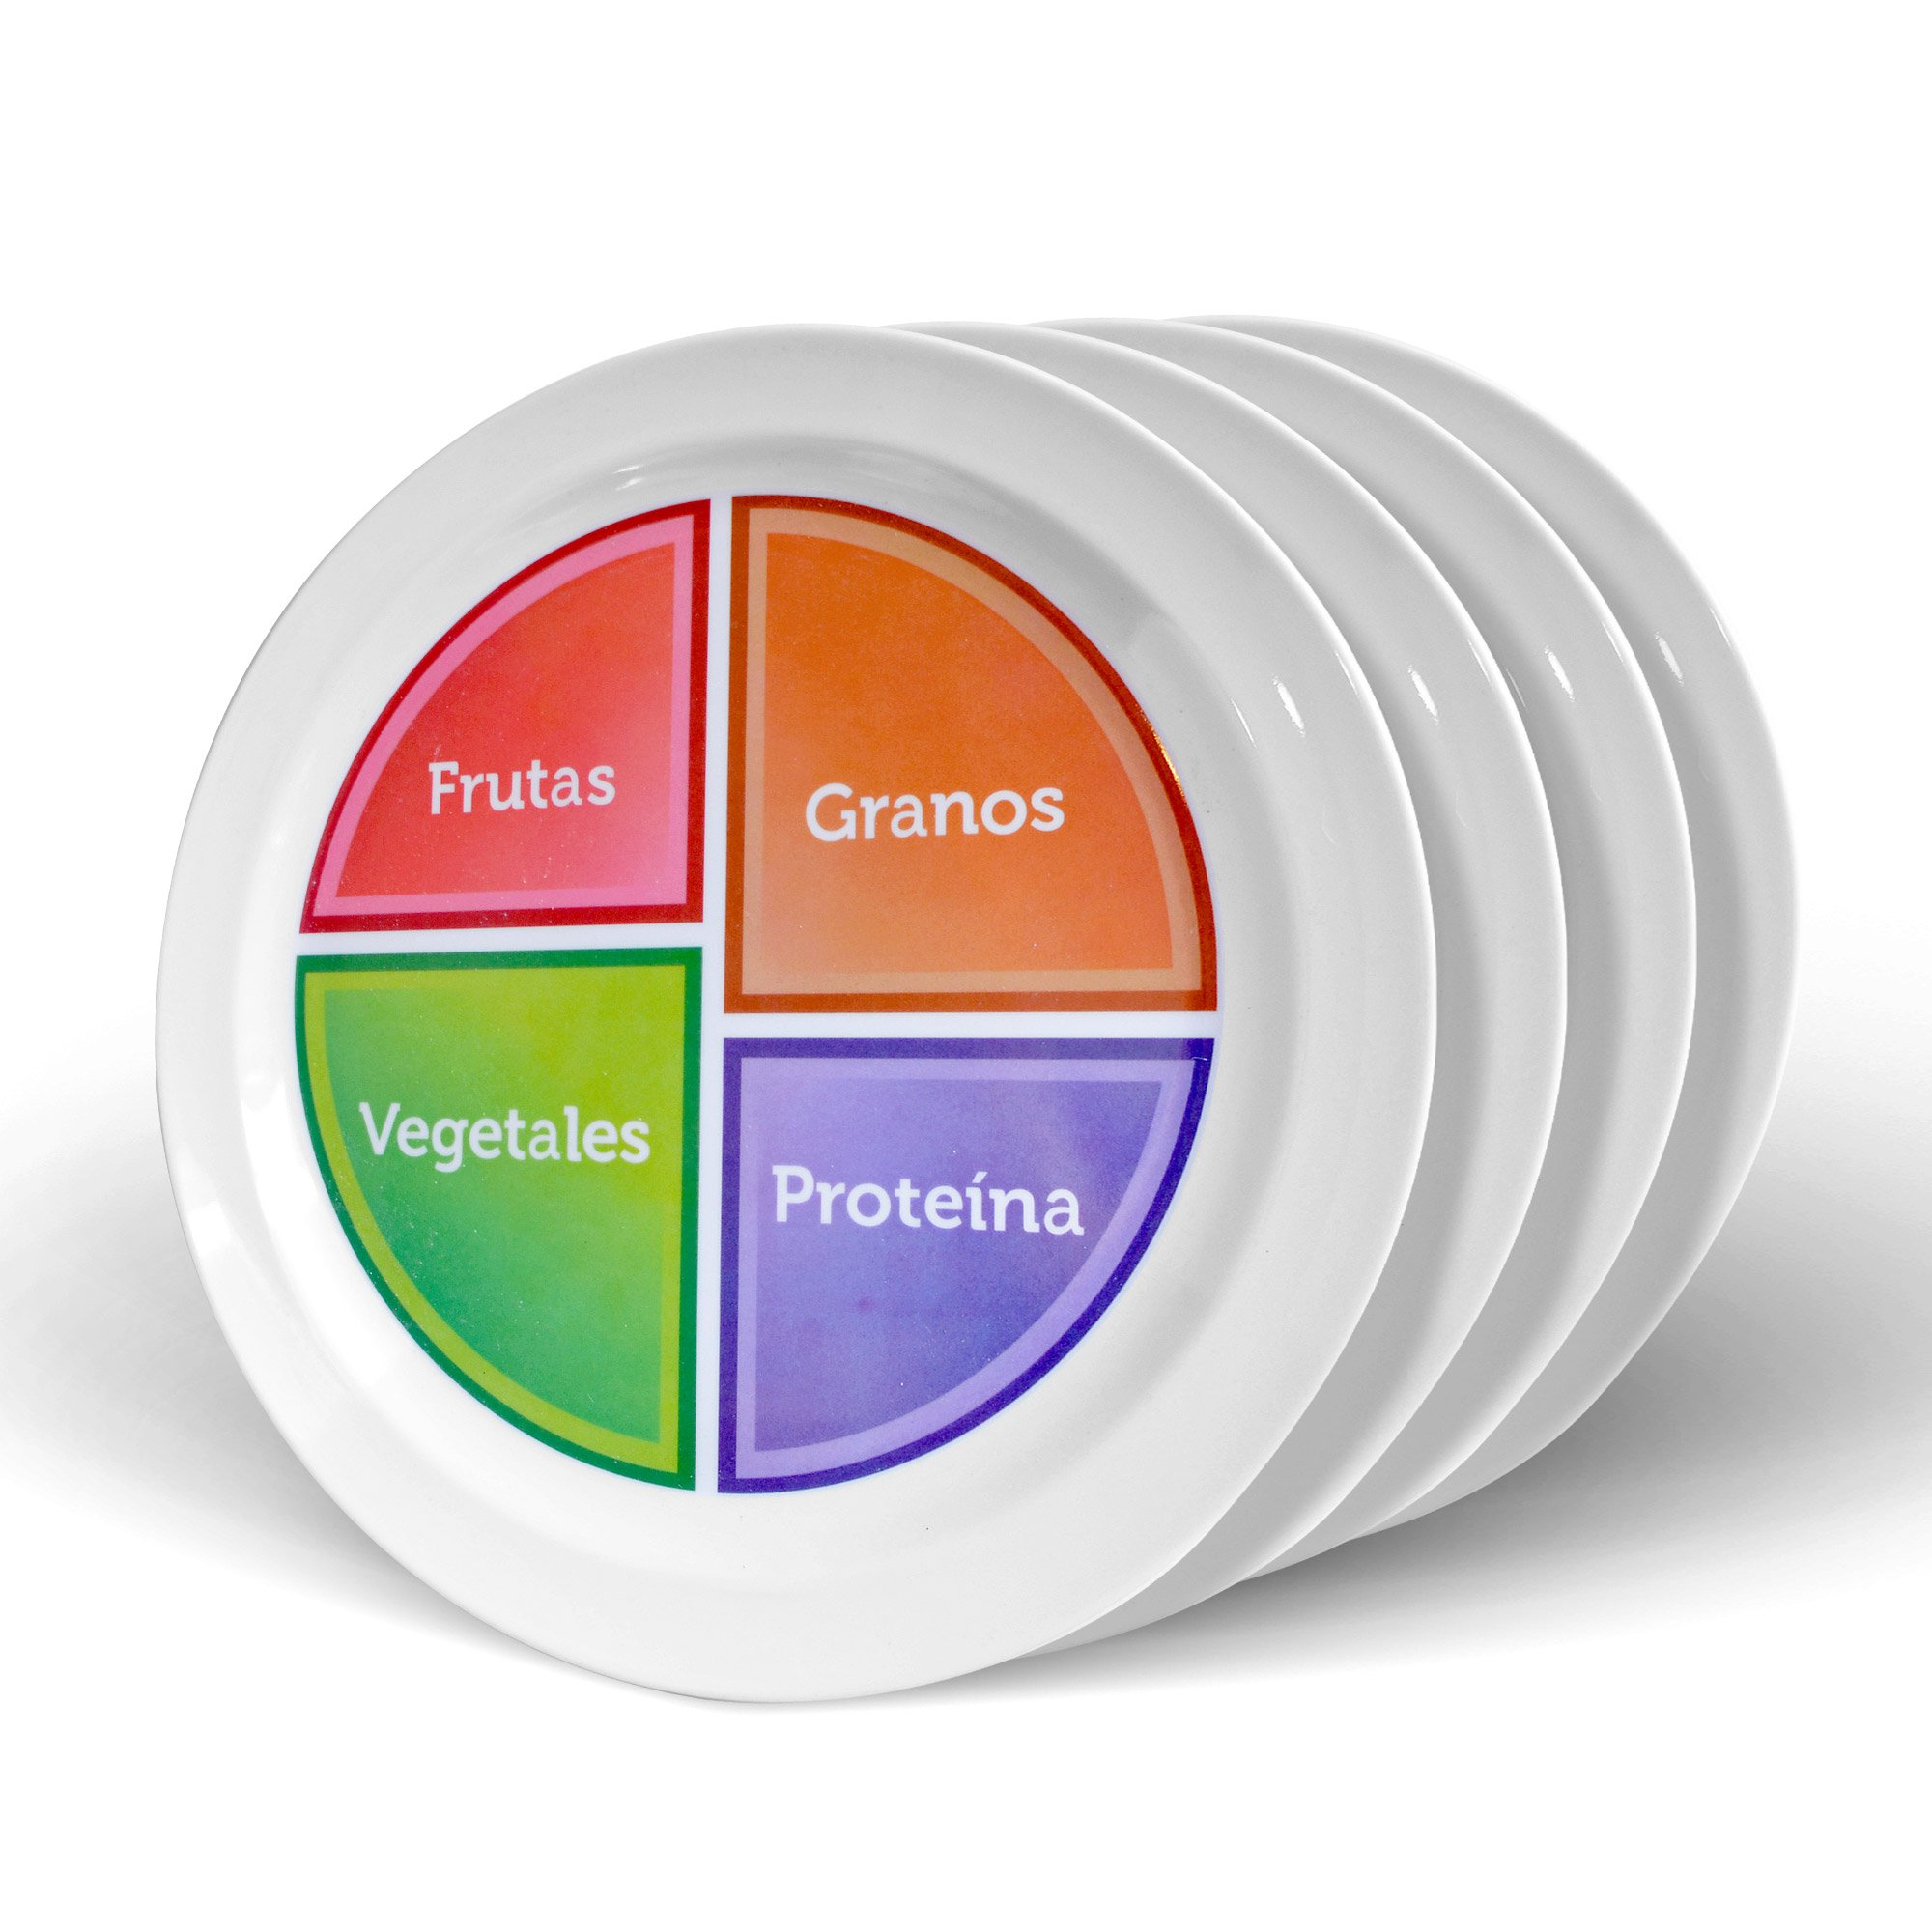 Cheap Food Groups In Myplate Find Food Groups In Myplate